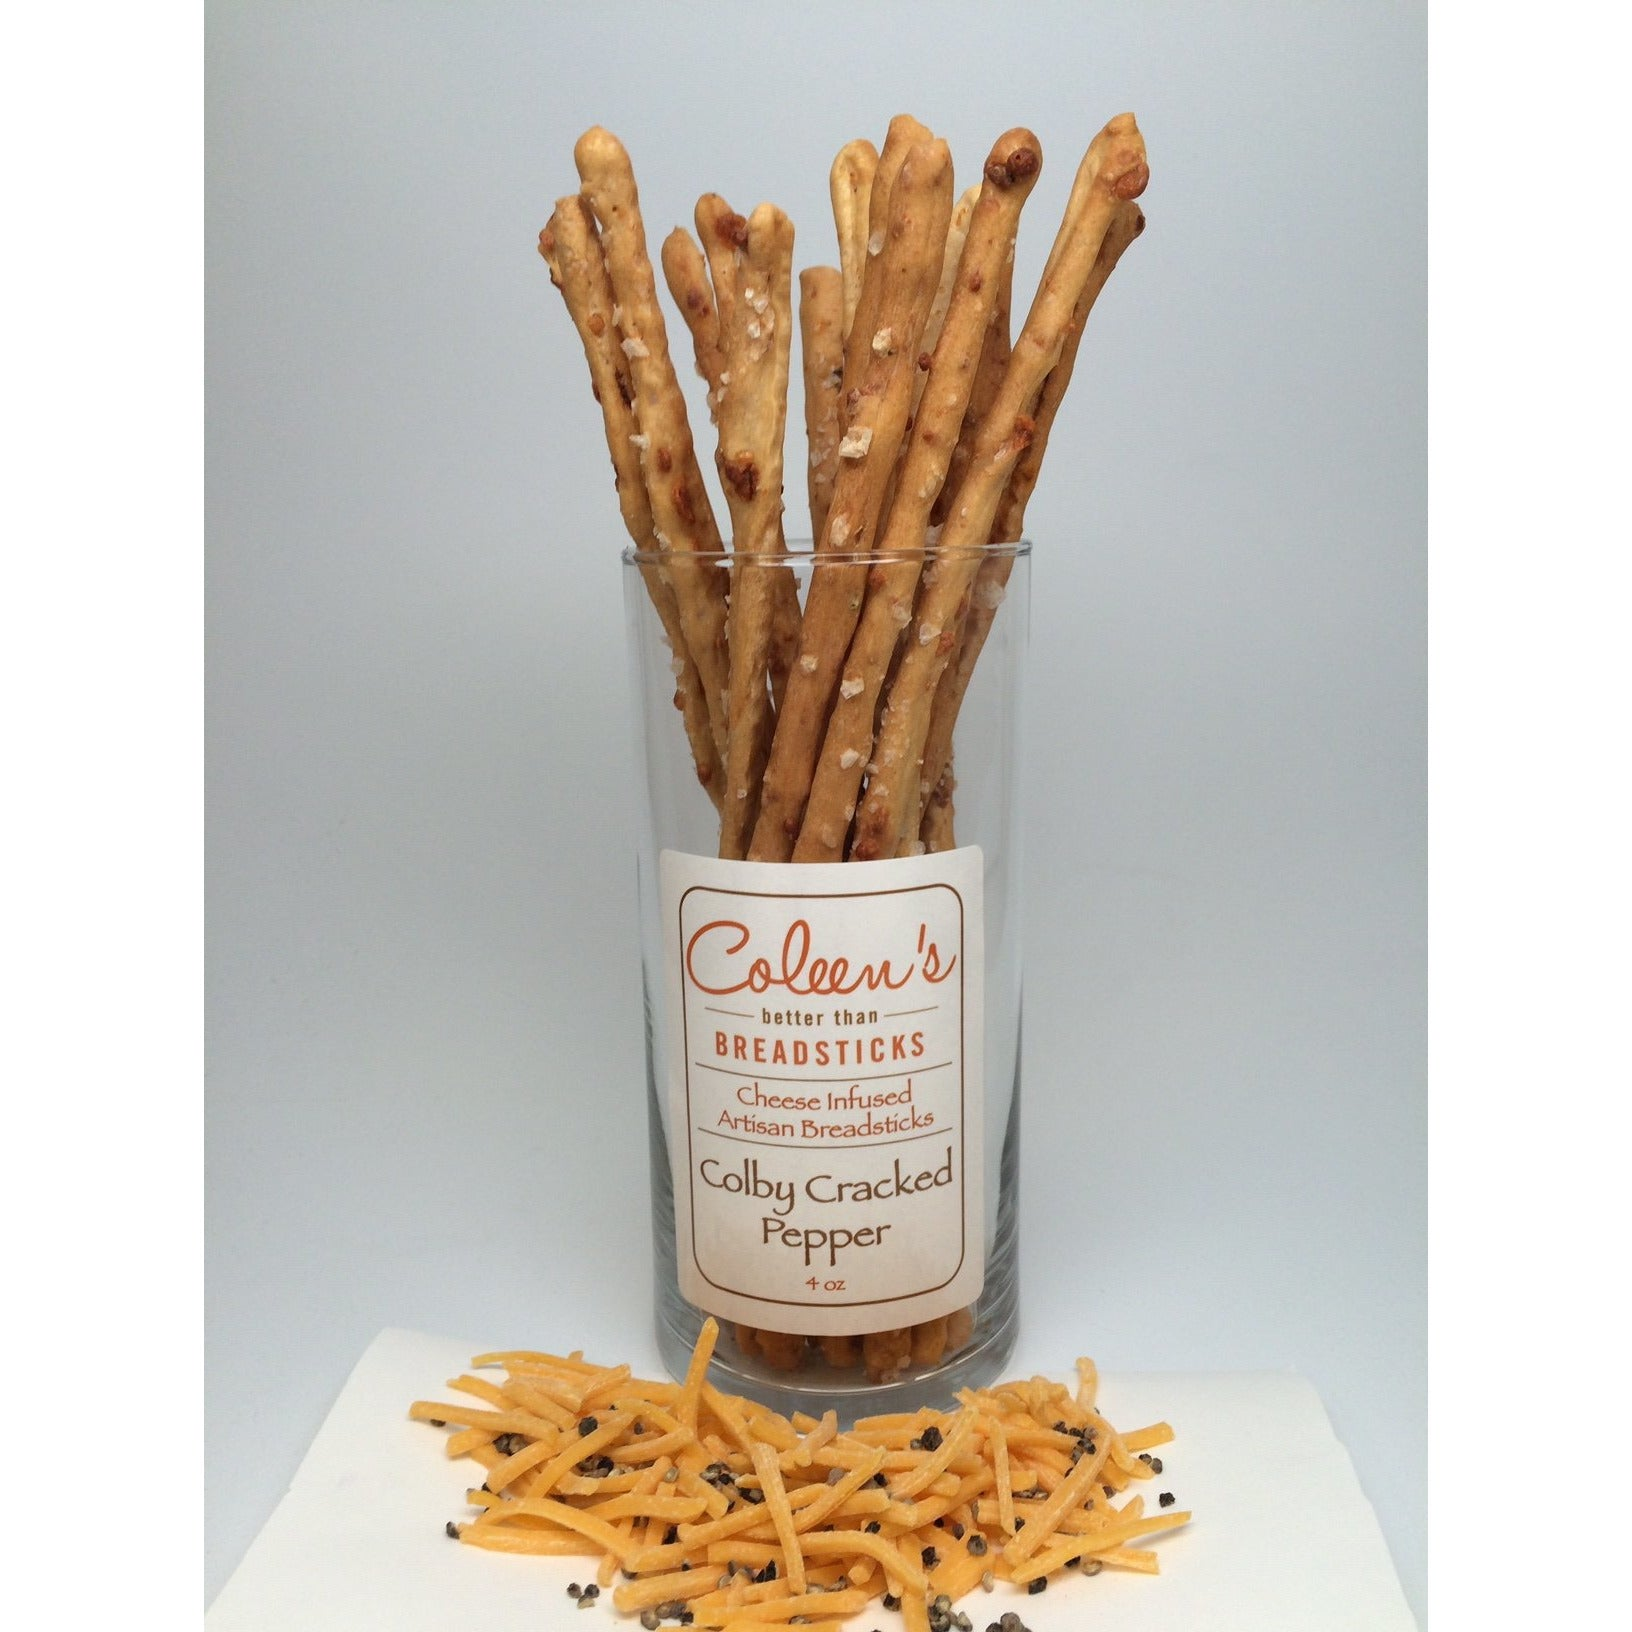 Coleen's Colby Cracked Pepper Breadsticks 4oz